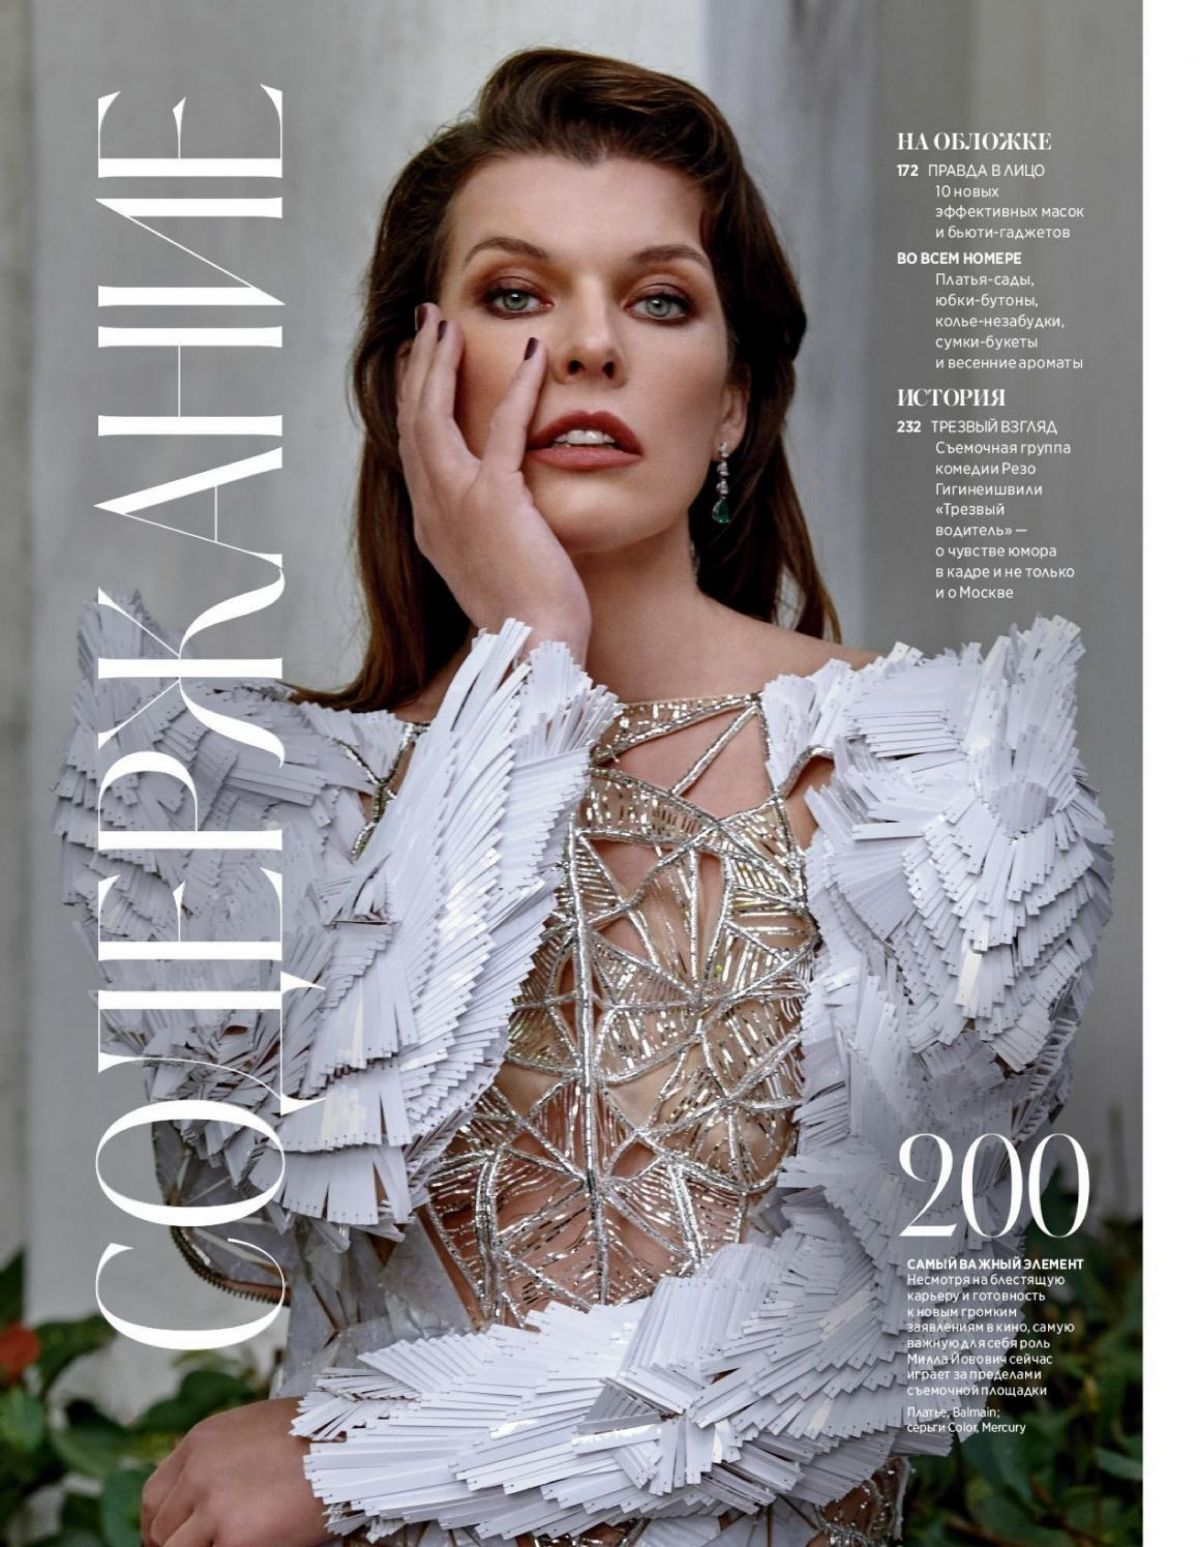 https://ist5-2.filesor.com/pimpandhost.com/1/8/2/7/182717/7/i/P/q/7iPqp/milla-jovovich-in-instyle-magazine-russia-april-2019-0.jpg